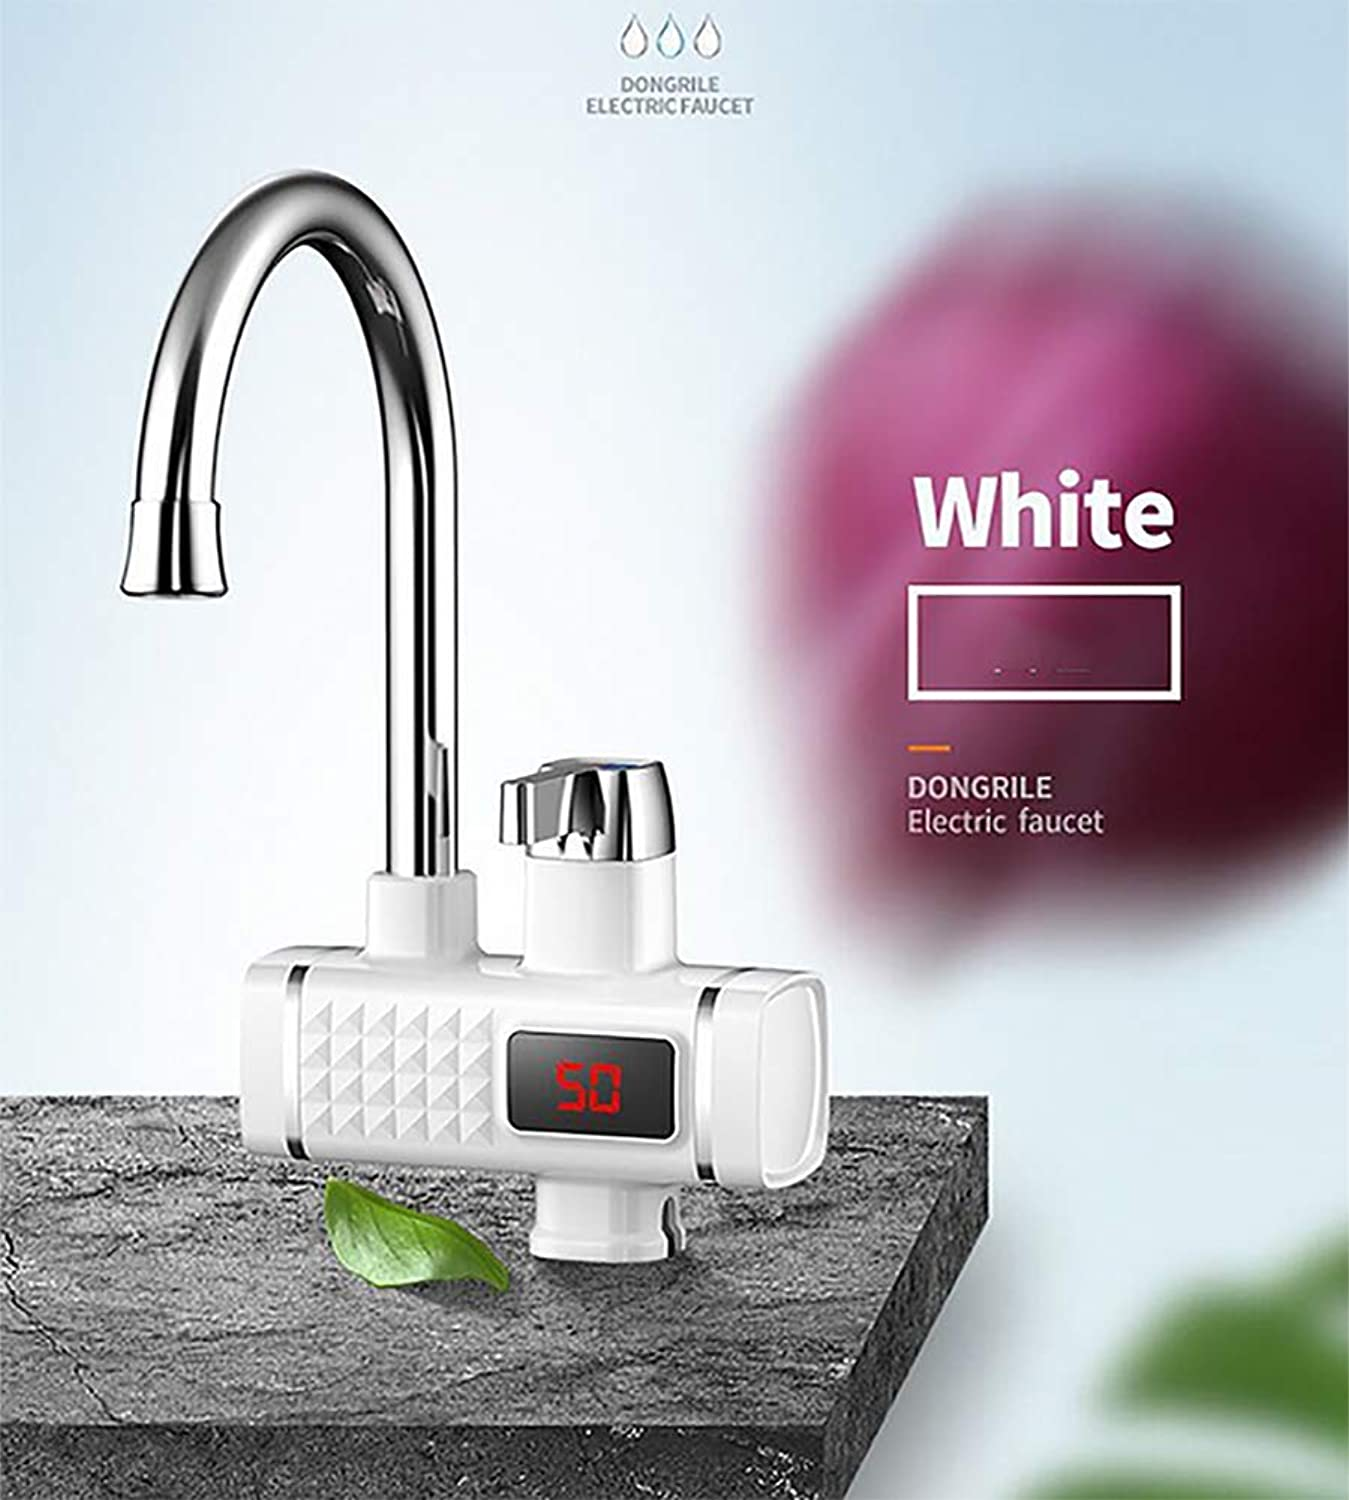 3 Sec Instant Tankless Electric Hot Water Heater Faucet With LED Digital Display,Kitchen And Bathroom Fast Heating Tap Water Faucet.